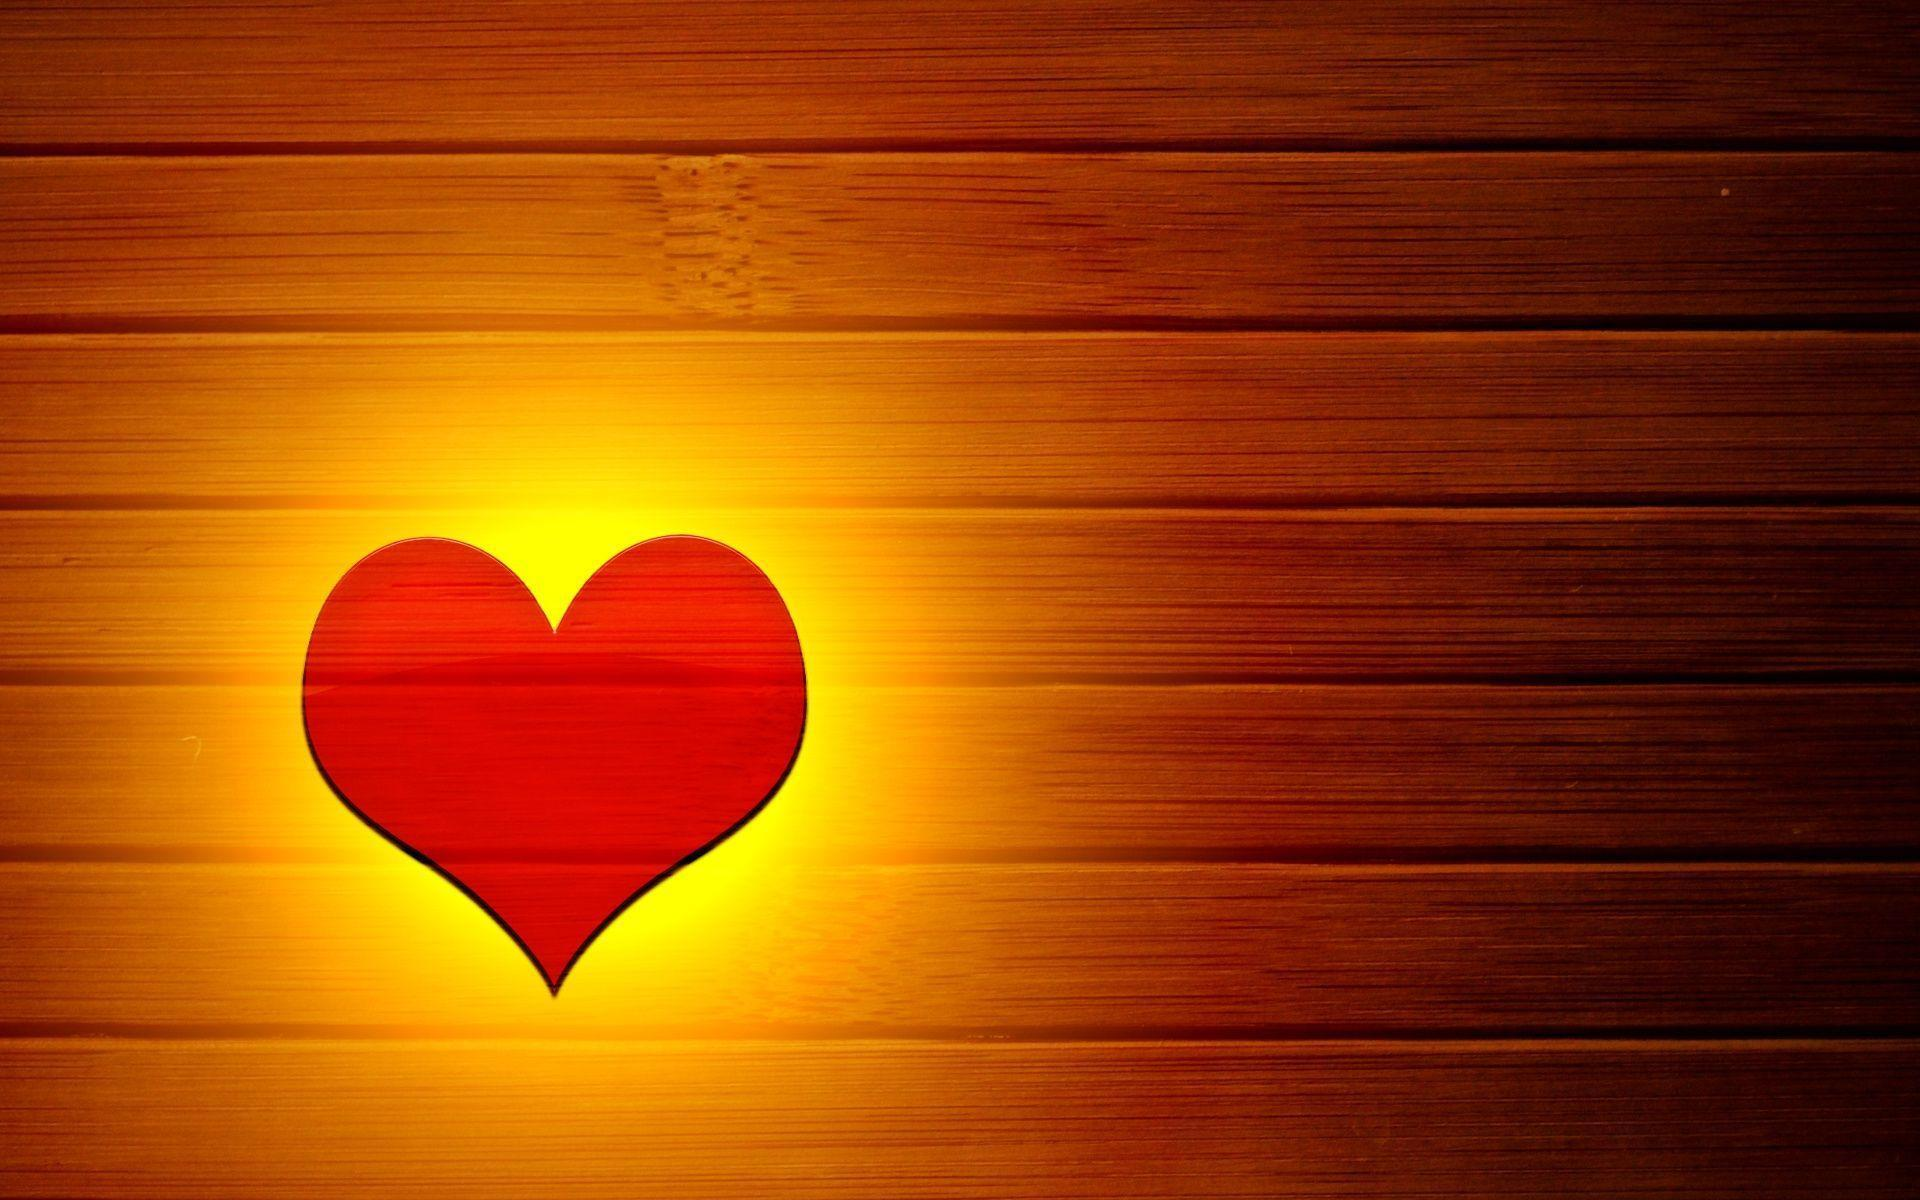 Love Wallpapers Thimes : Love Backgrounds Wallpapers - Wallpaper cave